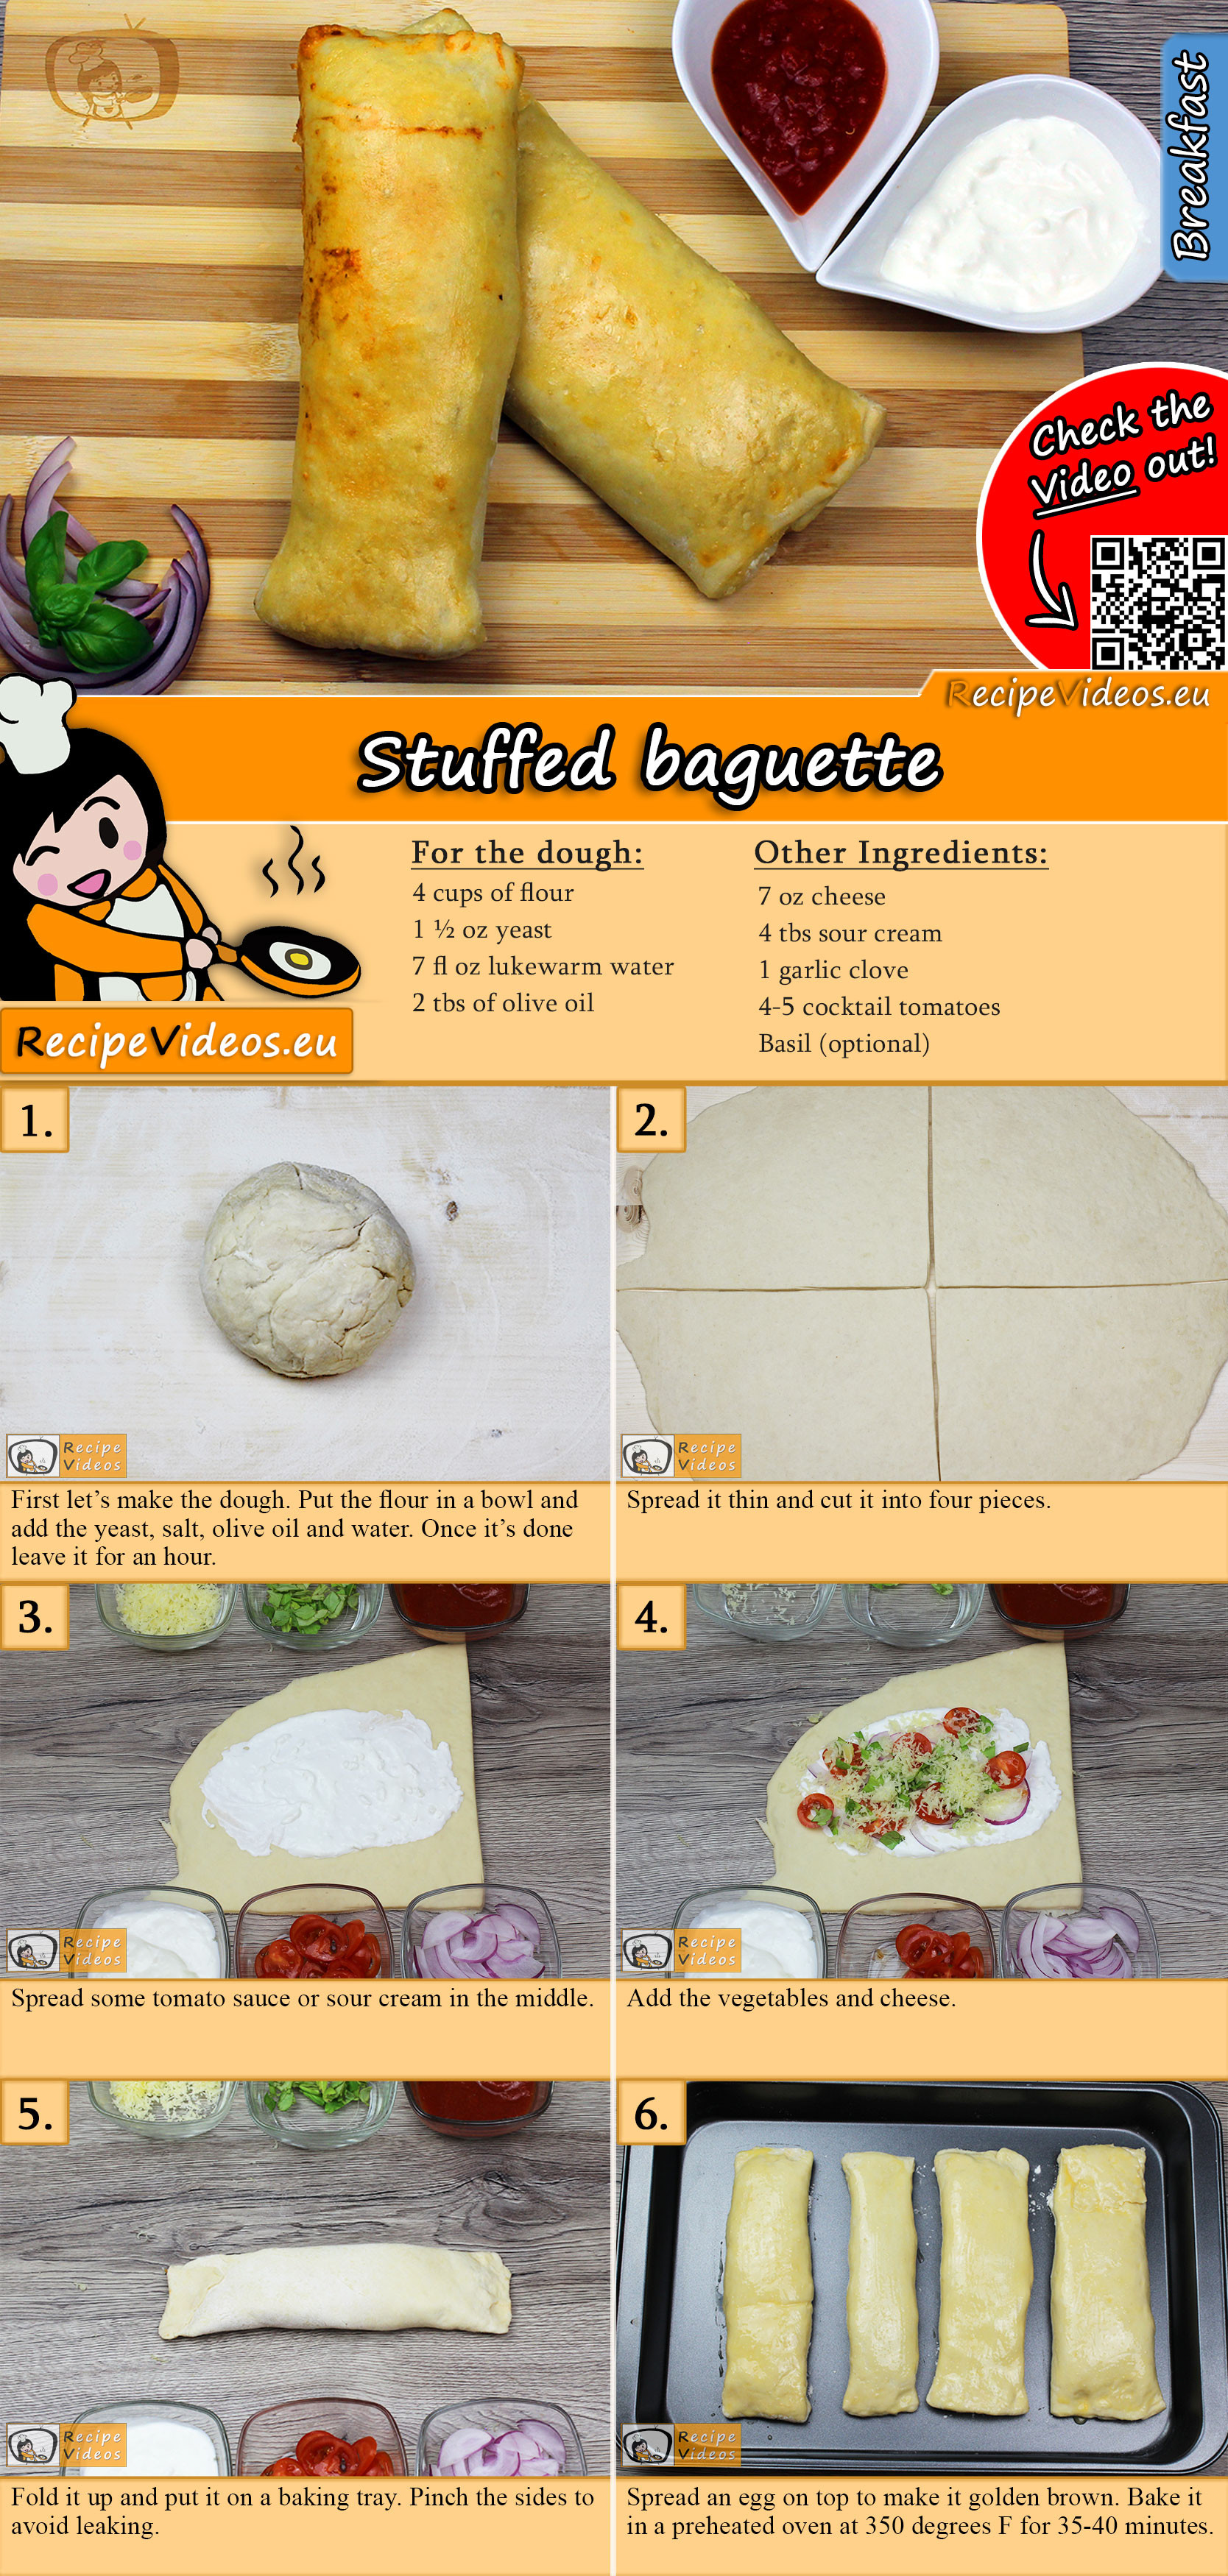 Stuffed baguette recipe with video